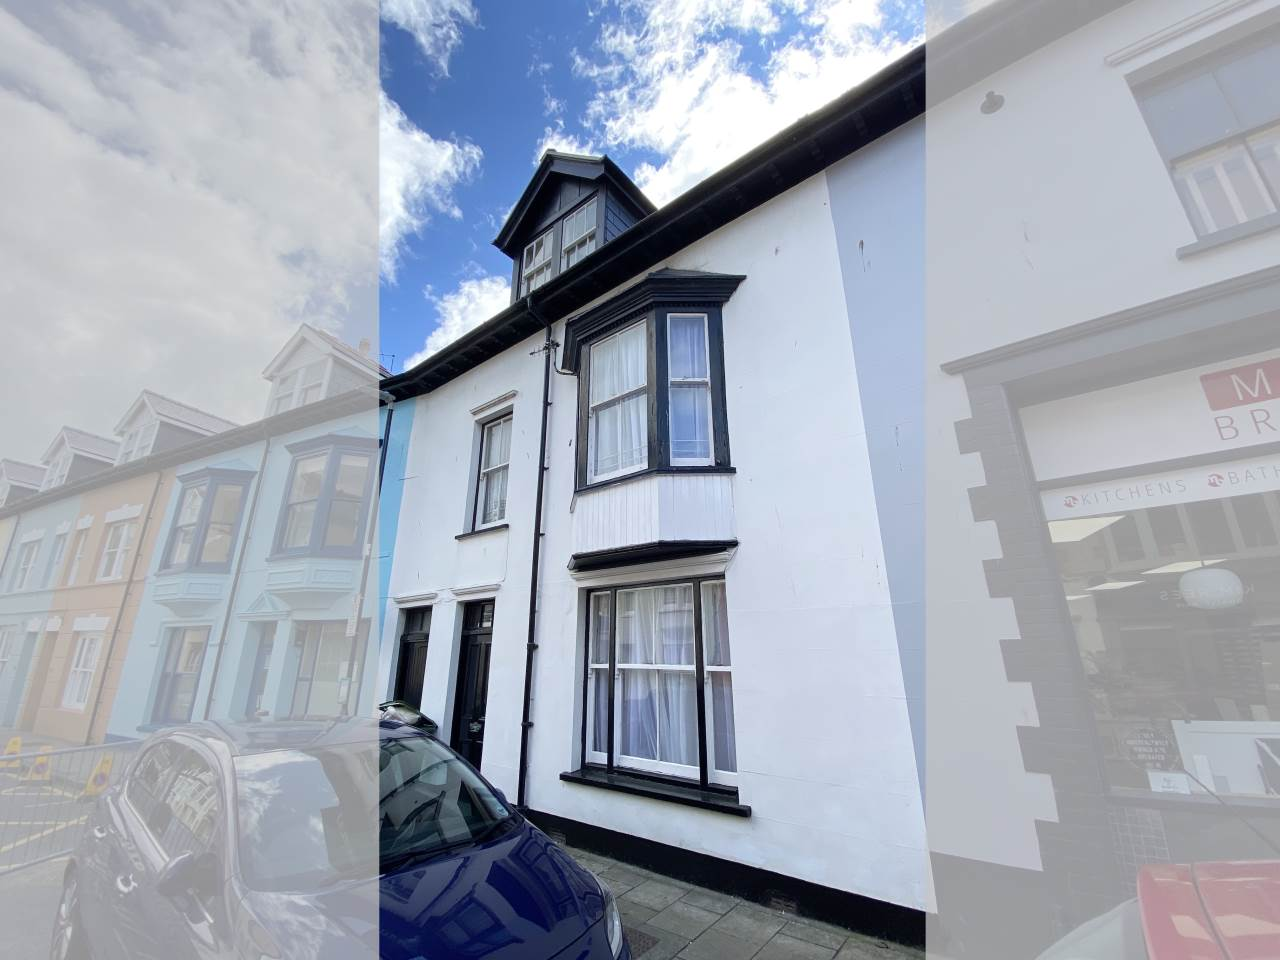 5 bed house to rent in Aberystwyth, Ceredigion 0